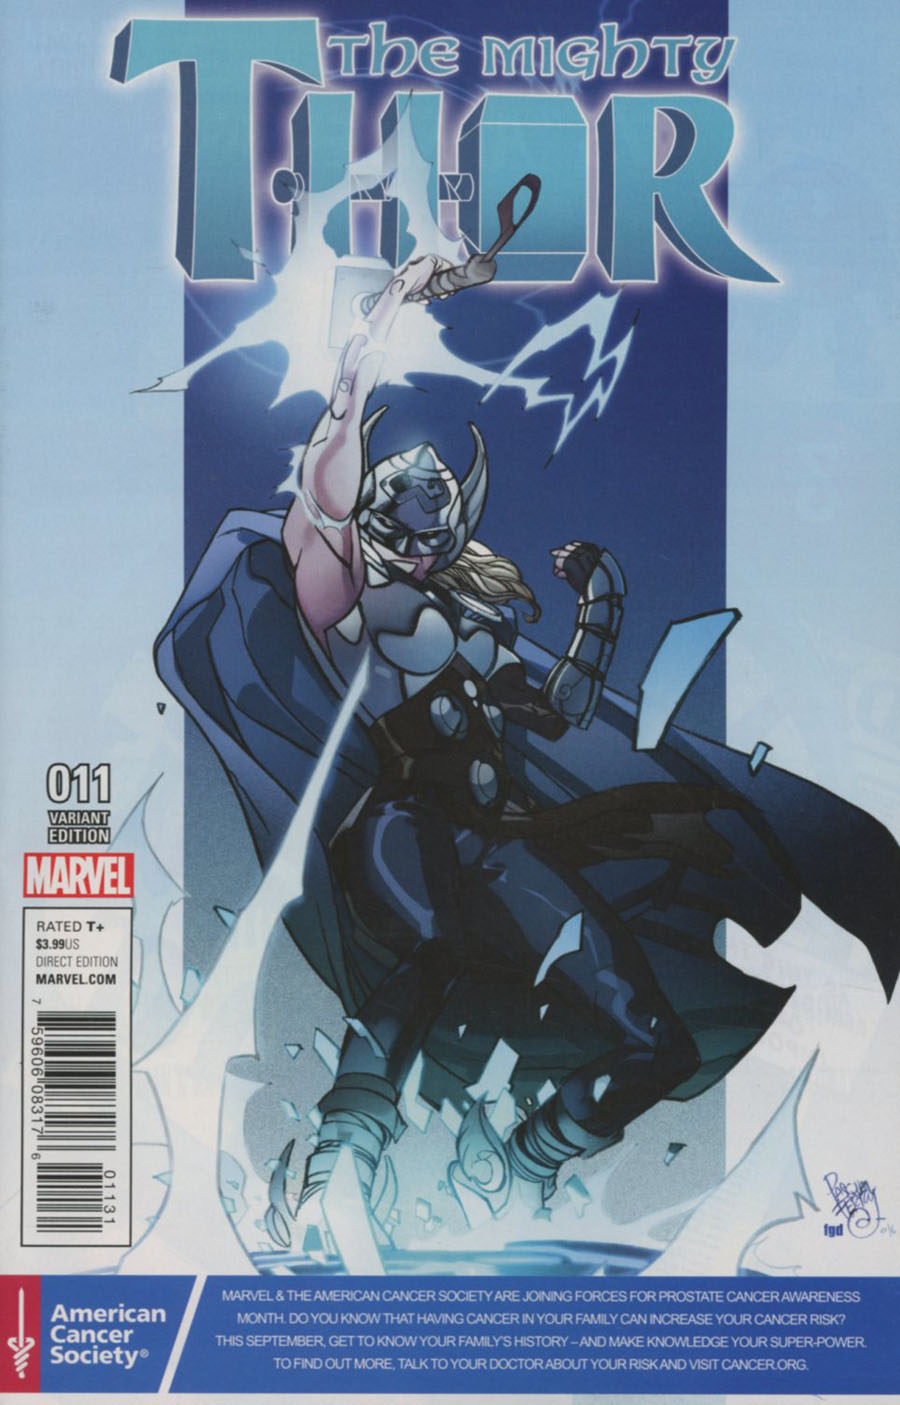 Mighty Thor Vol 2 #11 Cover C Variant Pasqual Ferry Prostate Awareness Month Cover